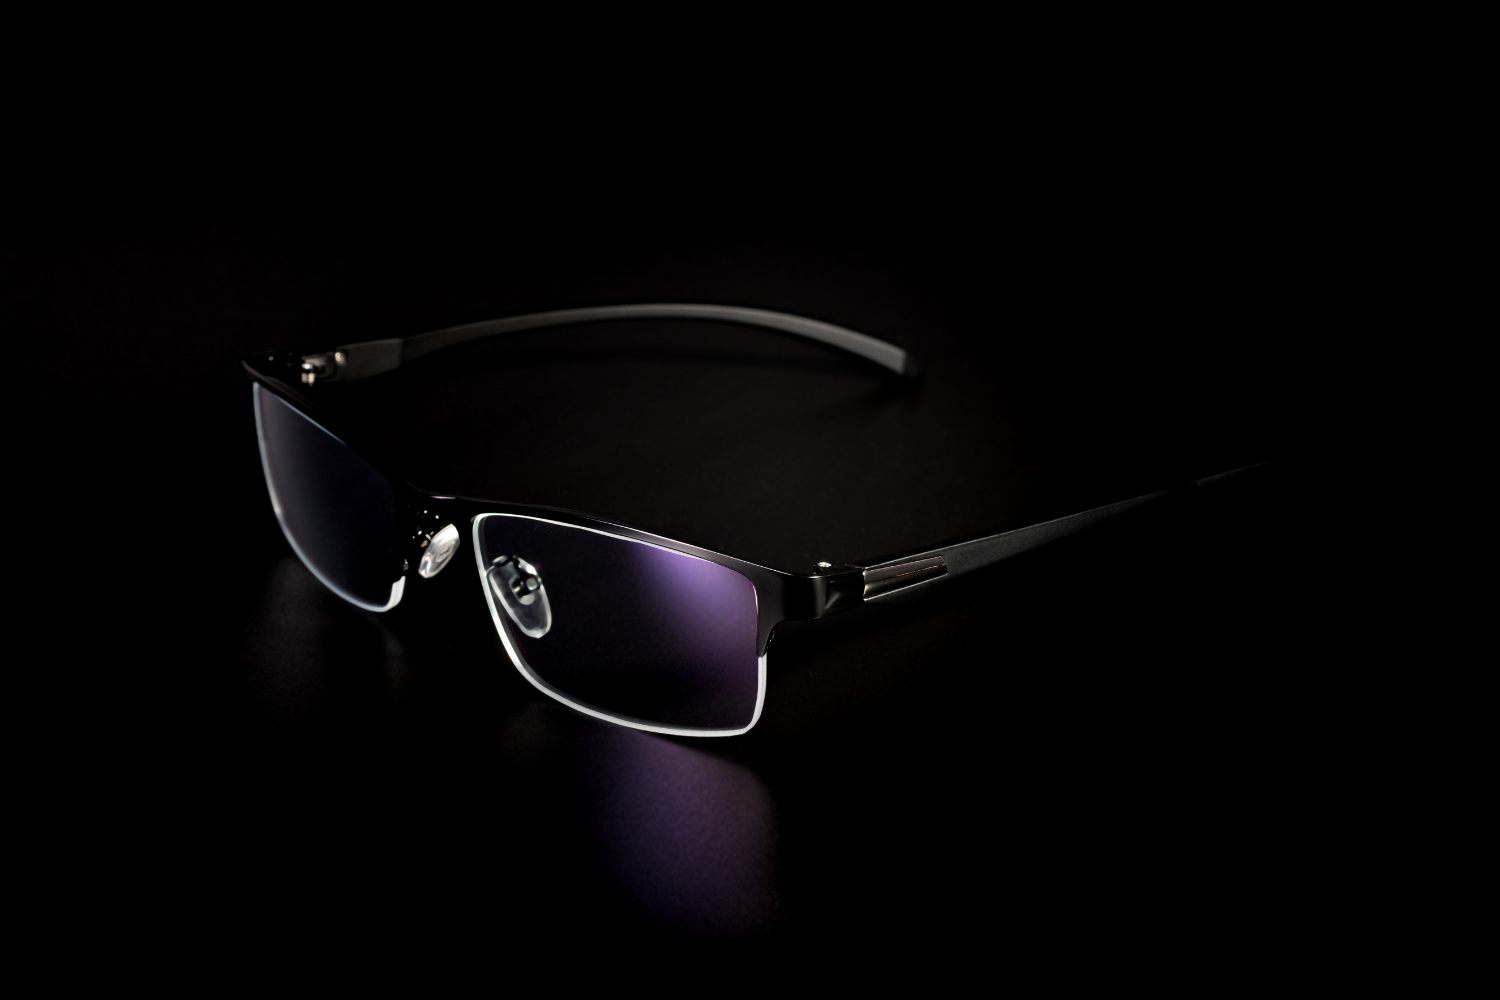 lunettes gaming 2020